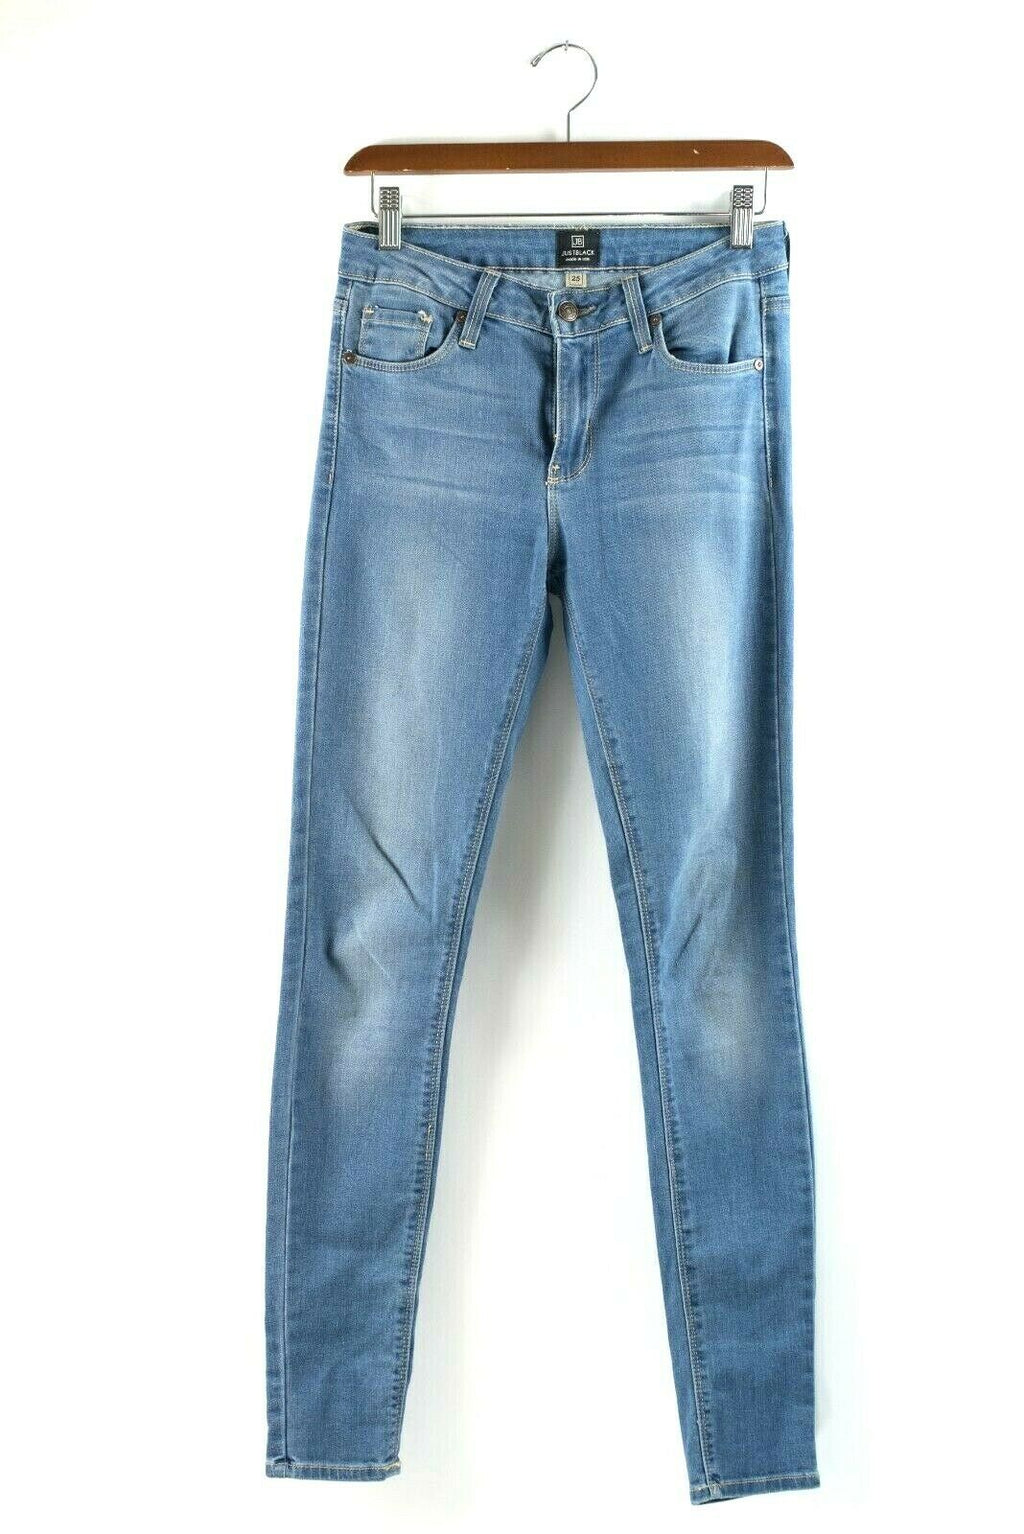 Just Black Womens Size 25 Blue Jeans Ankle Skinny Faded Skinny Denim Pants Ankle